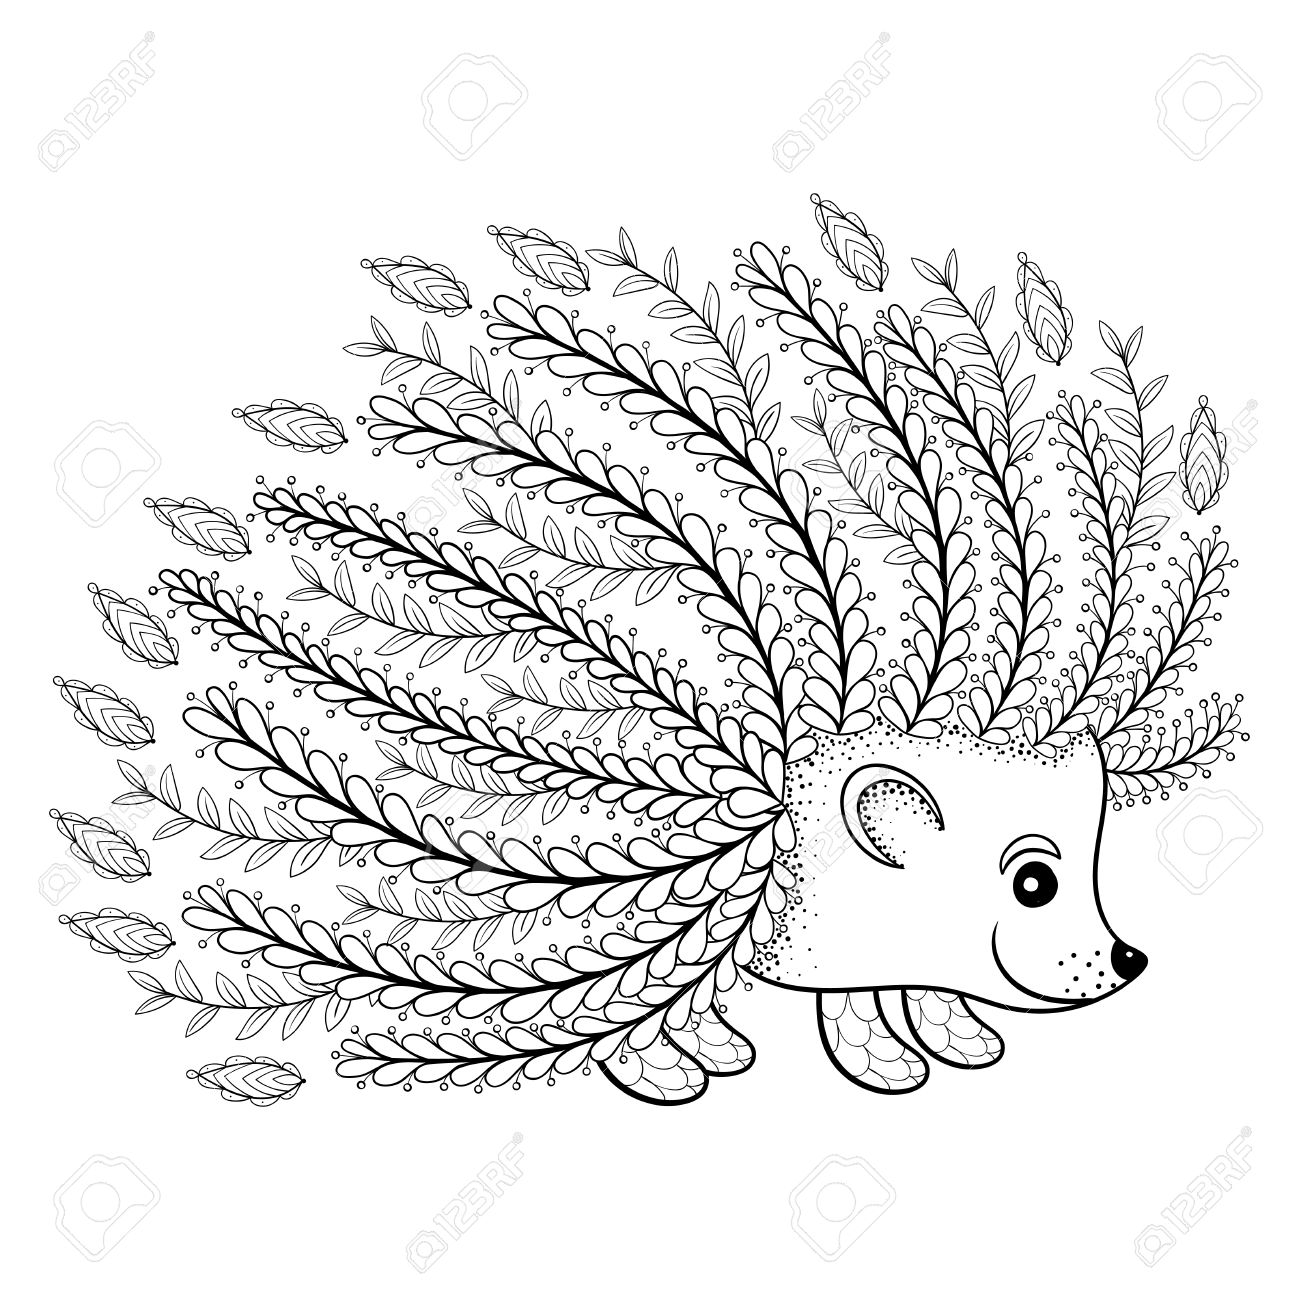 hand drawn artistic hedgehog for coloring page in doodle